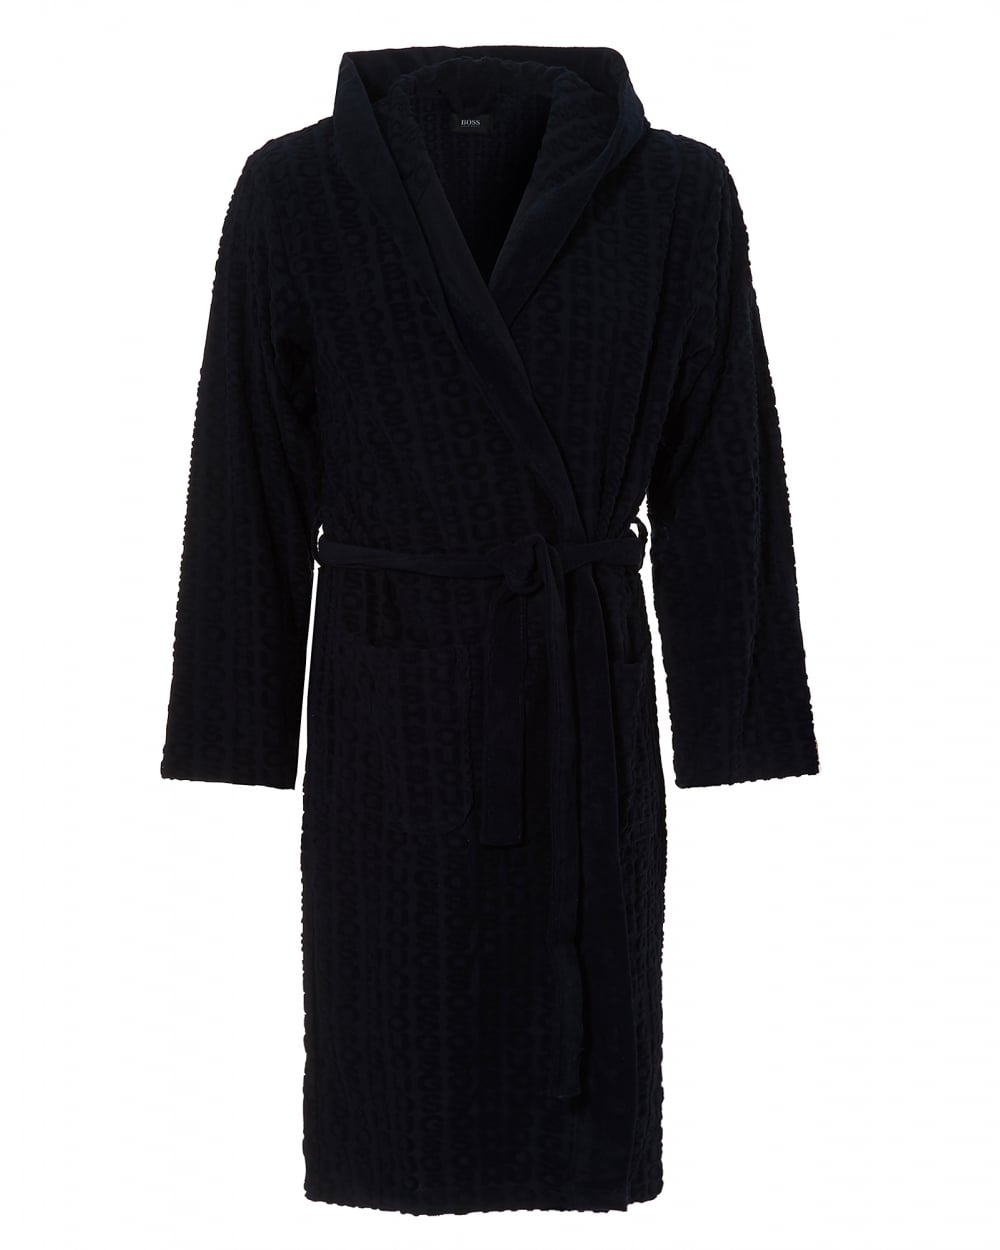 Hugo Boss Black Mens Hooded Robe, Cotton Blend Navy Blue Dressing Gown